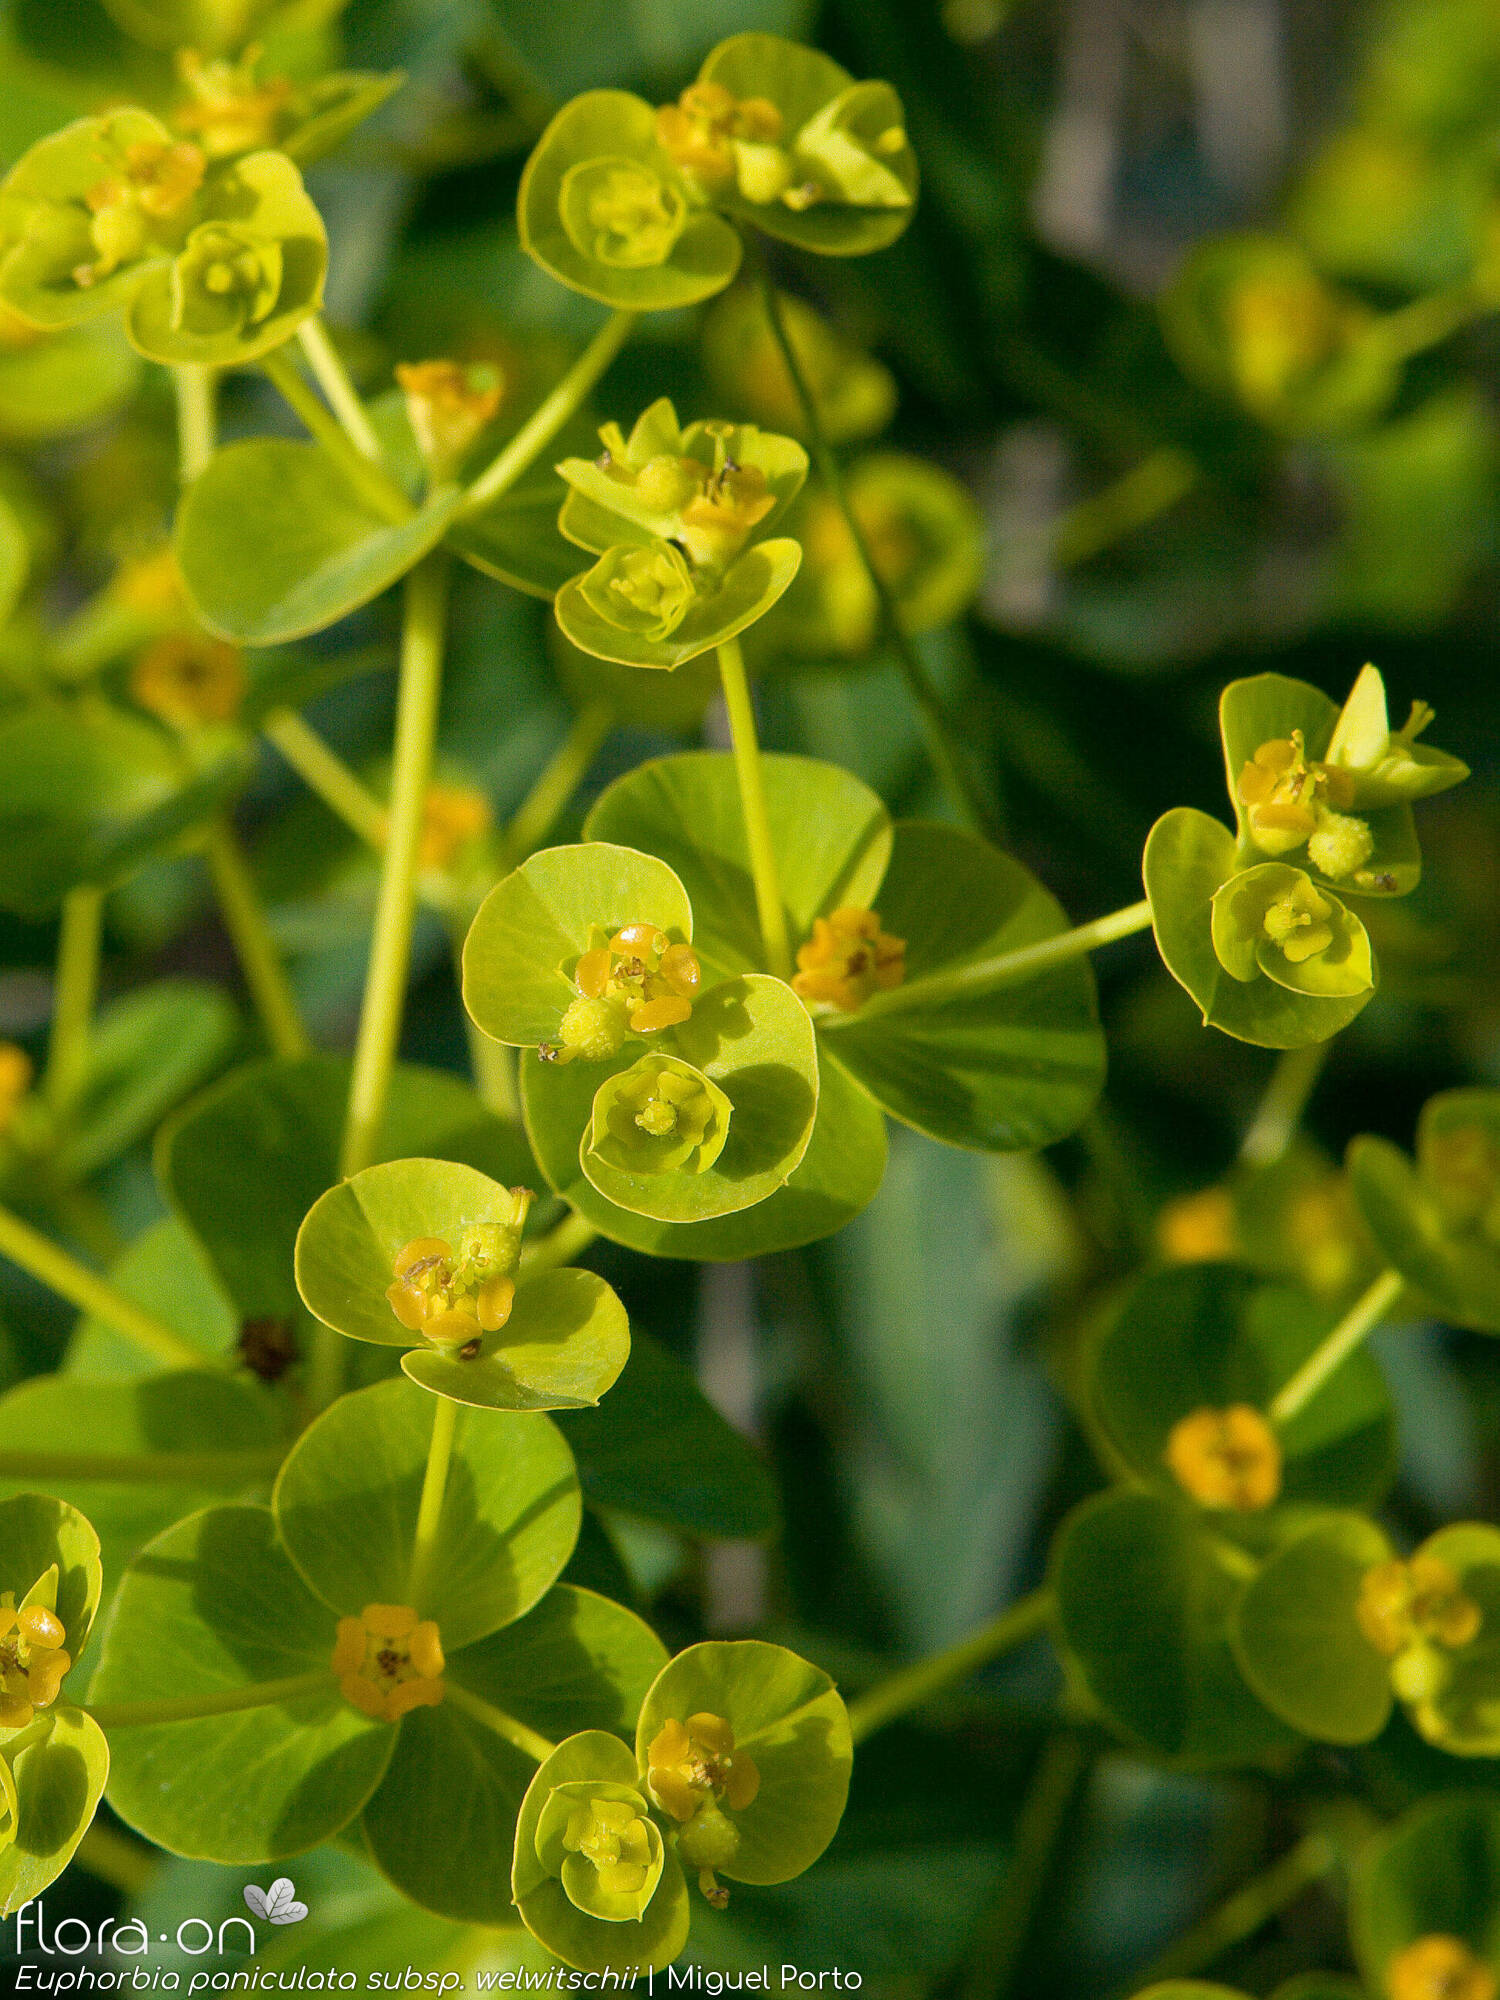 Euphorbia paniculata welwitschii - Flor (geral) | Miguel Porto; CC BY-NC 4.0